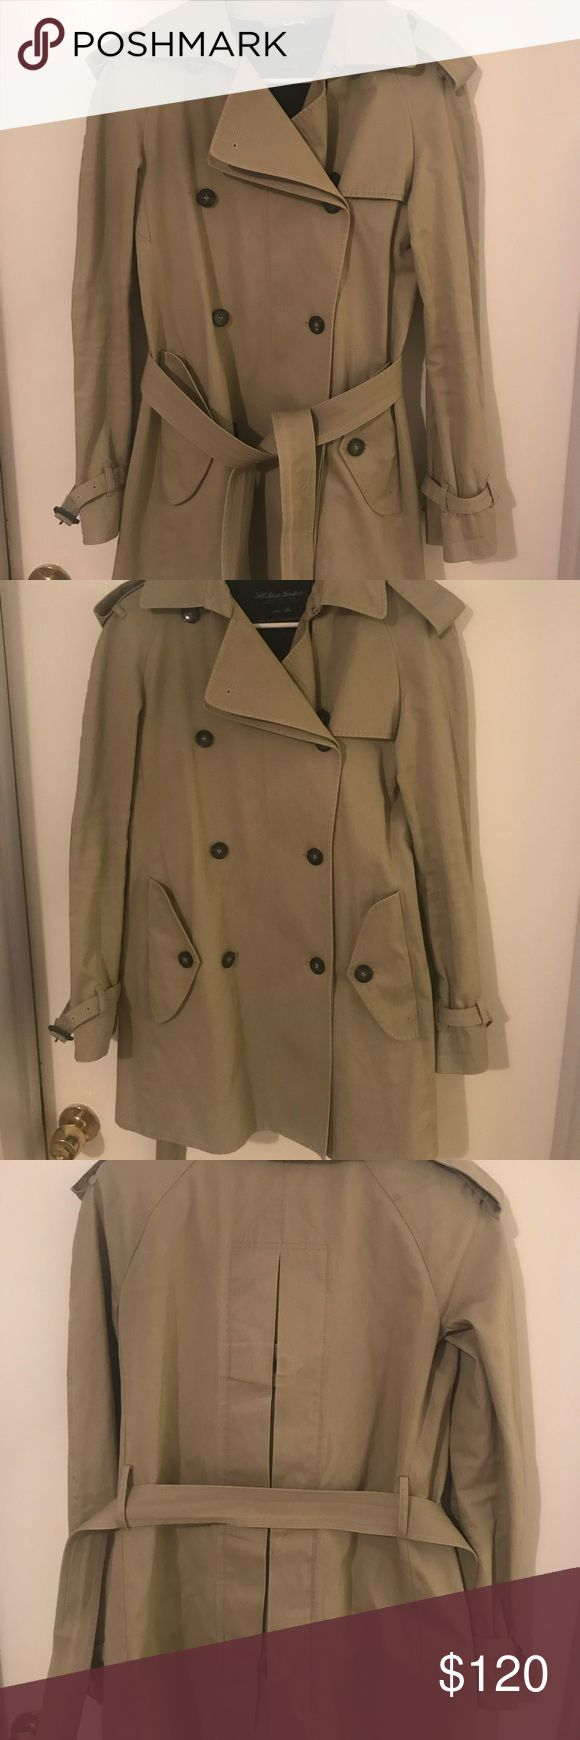 All Saints Trench coat Trench coat in great condition. Dry cleaned. All Saints Jackets & Coats Trench Coats